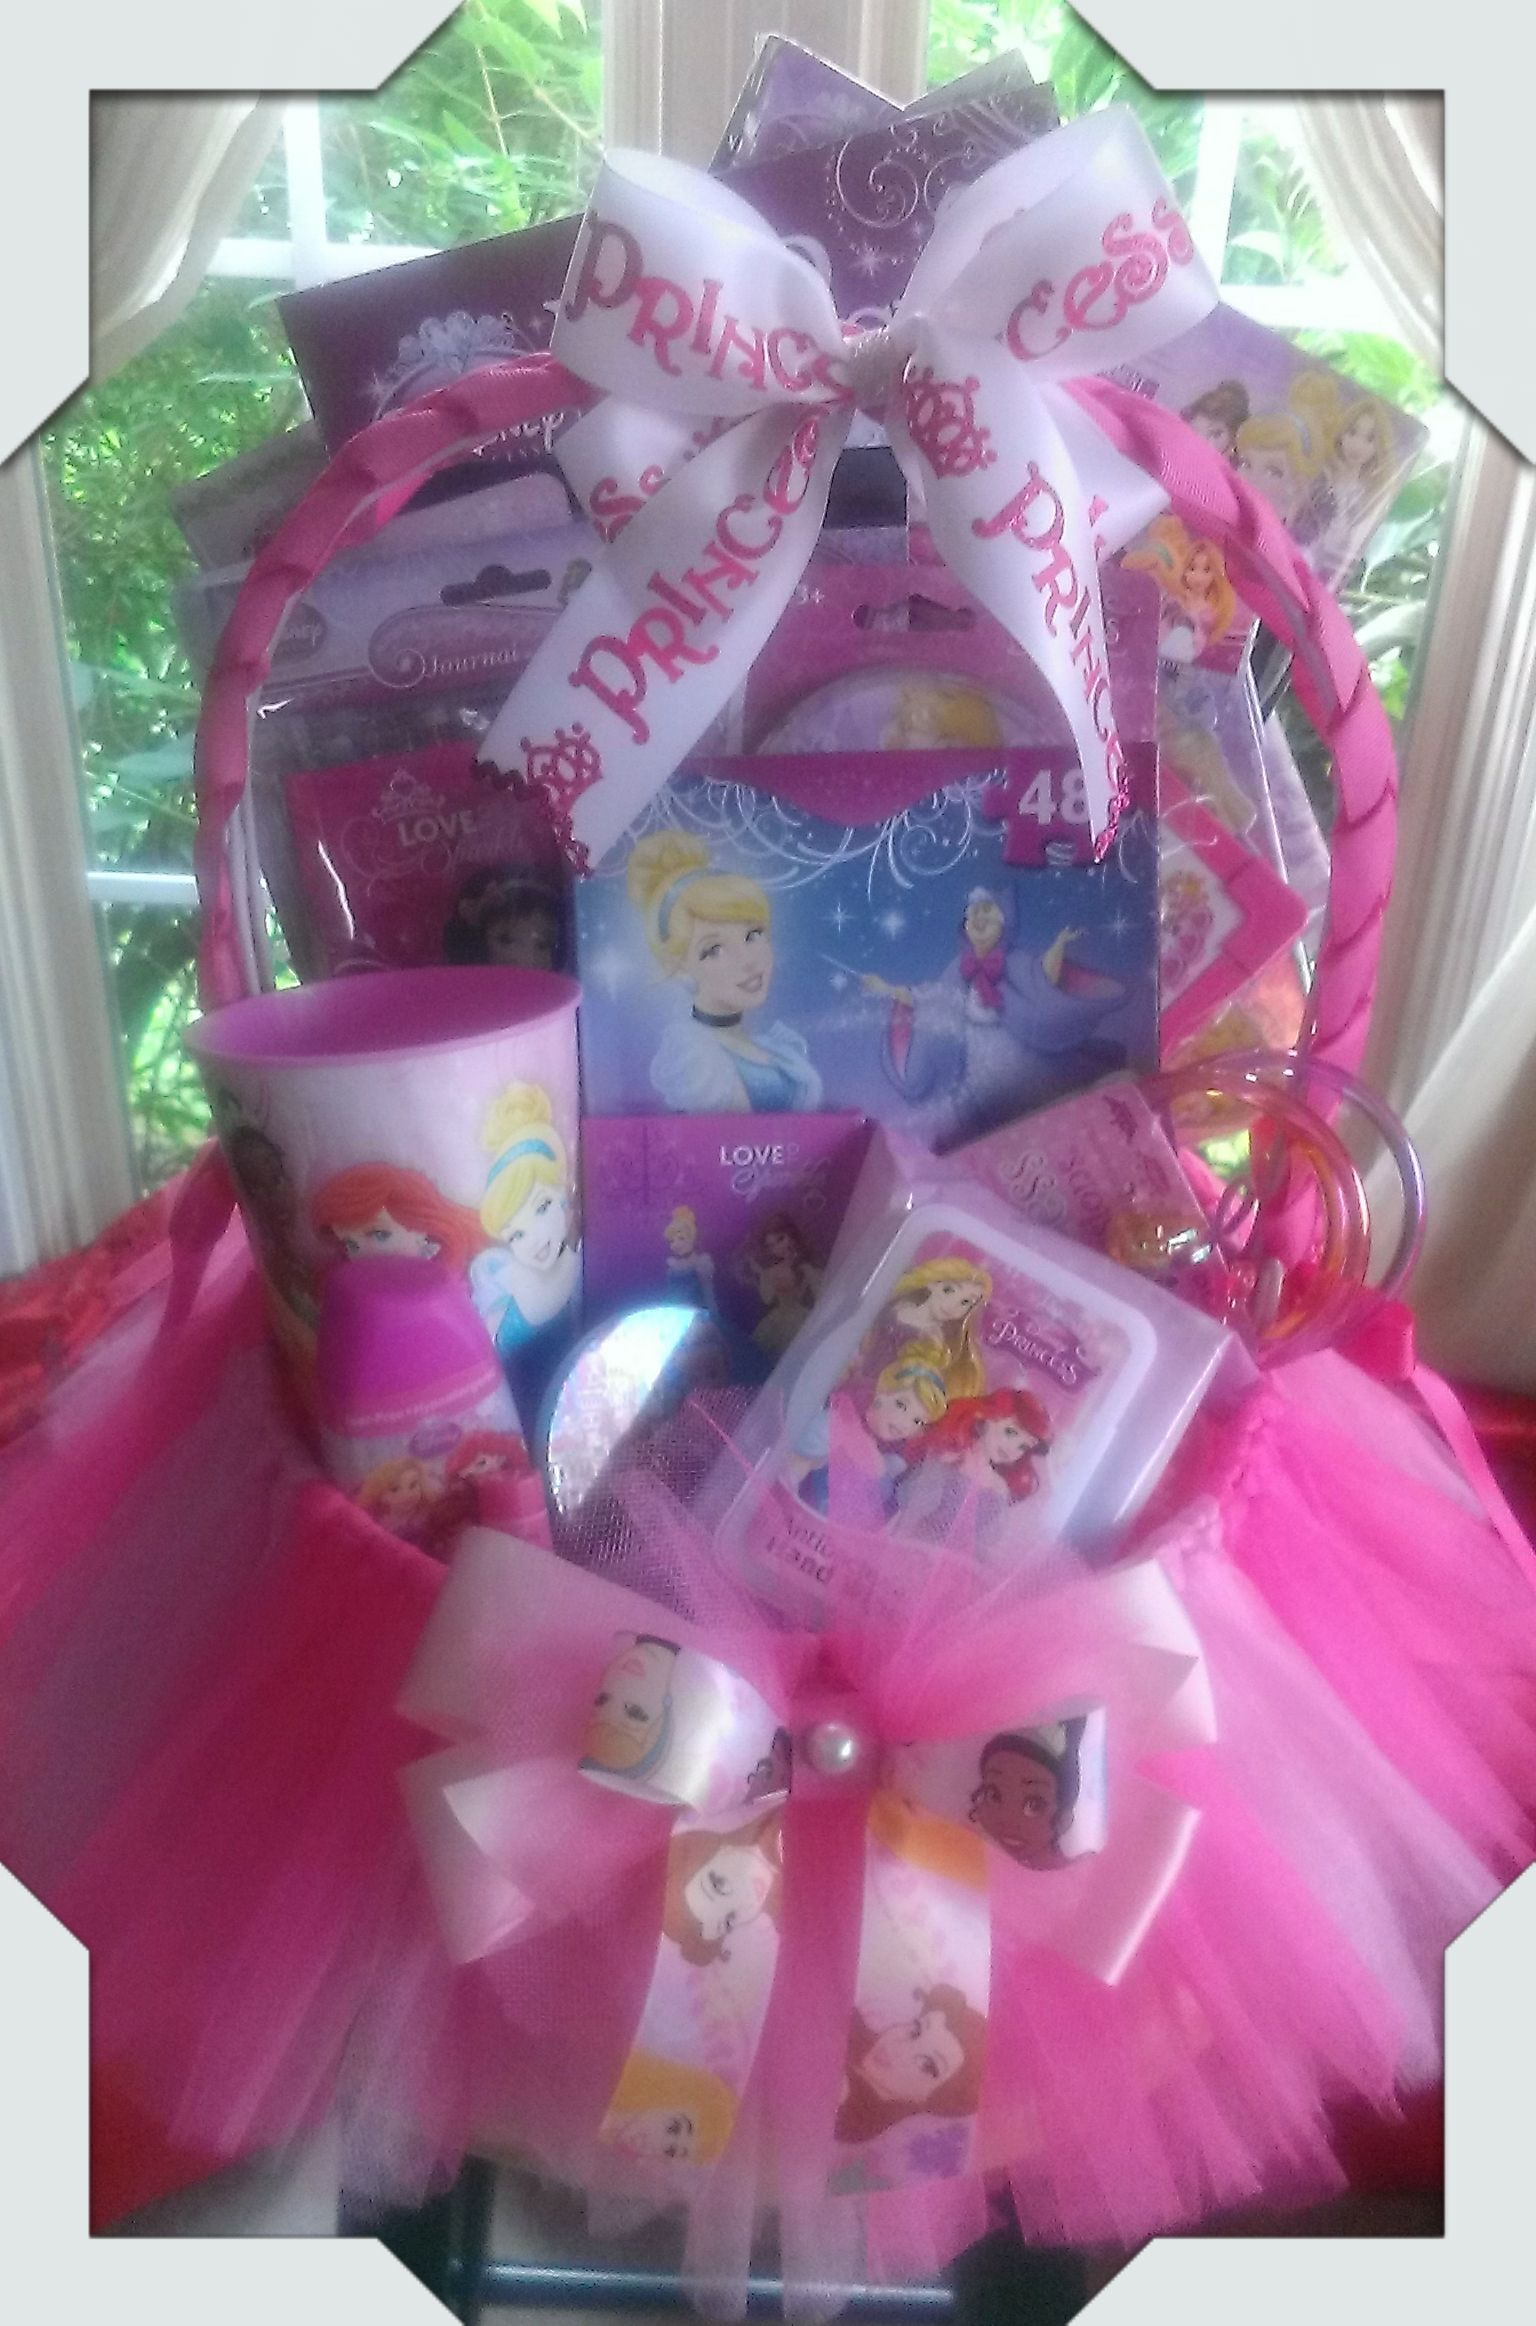 Disney princess gift basket made by normas unique gift baskets disney princess gift basket made by normas unique gift baskets negle Choice Image